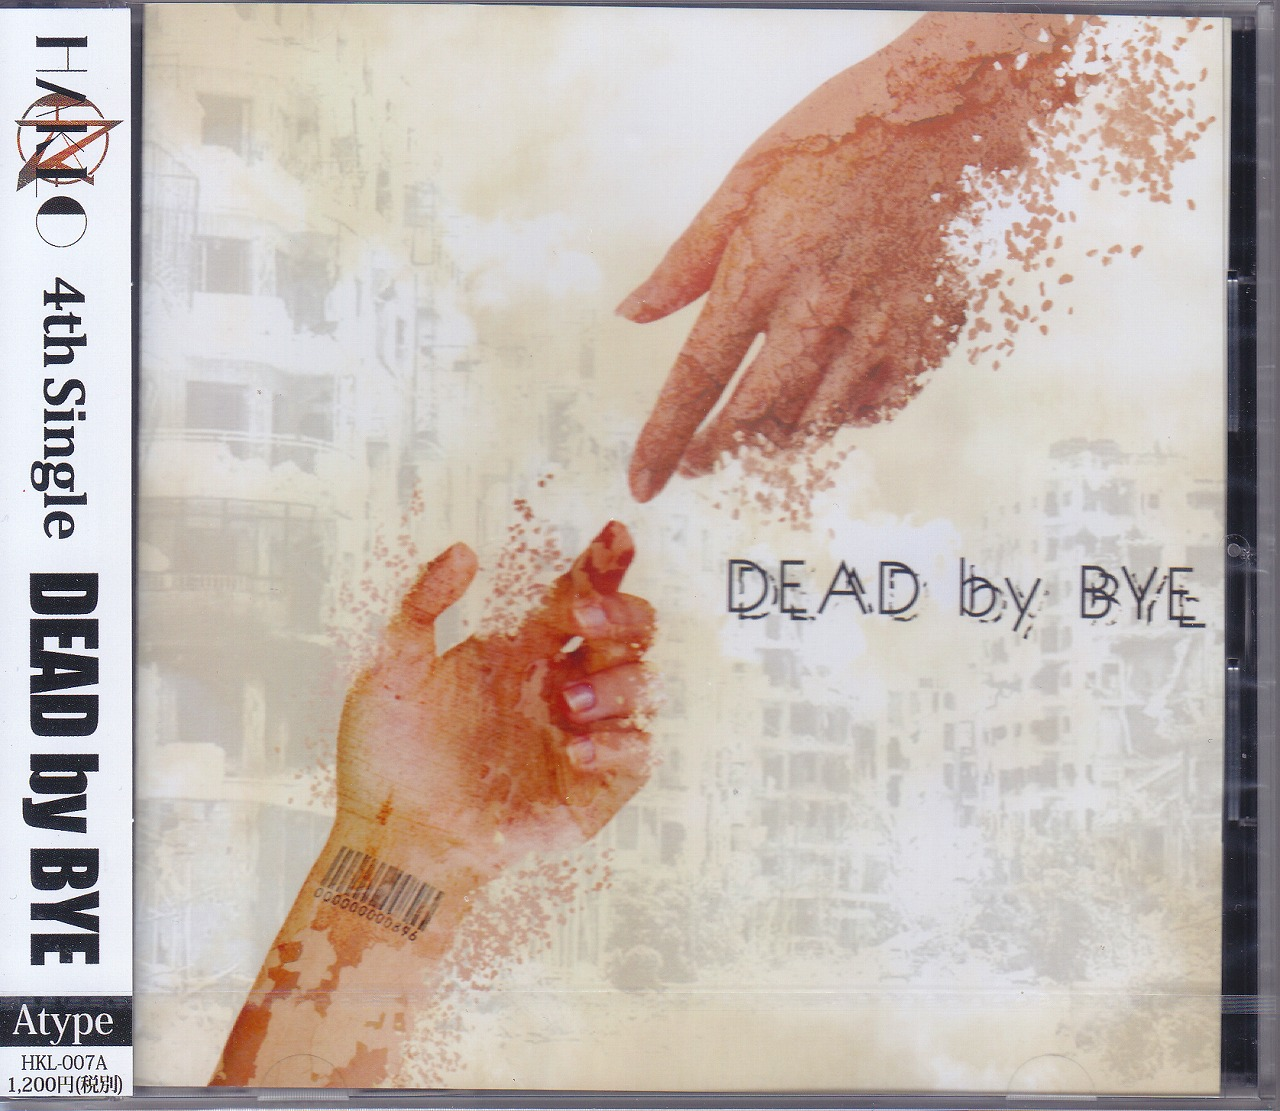 ハクロ の CD 【Atype】DEAD by BYE